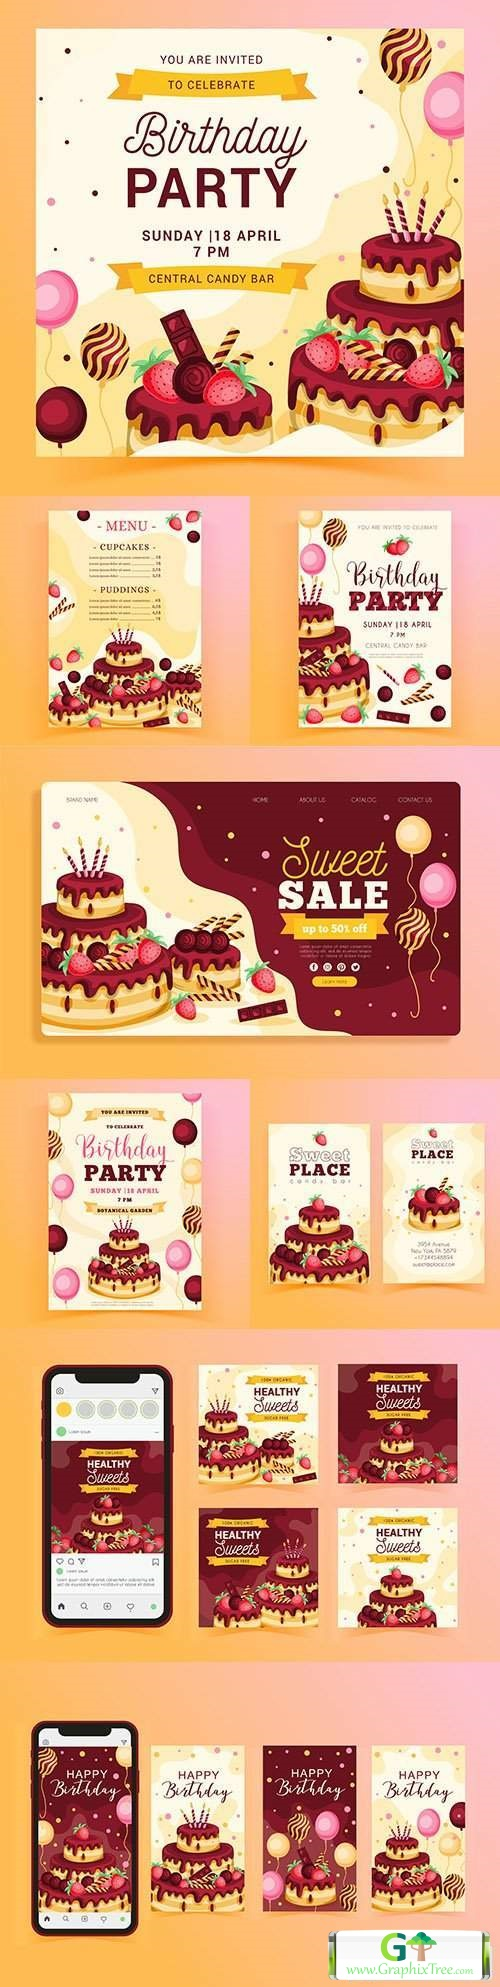 Birthday invitations with cake template posts on Instagram